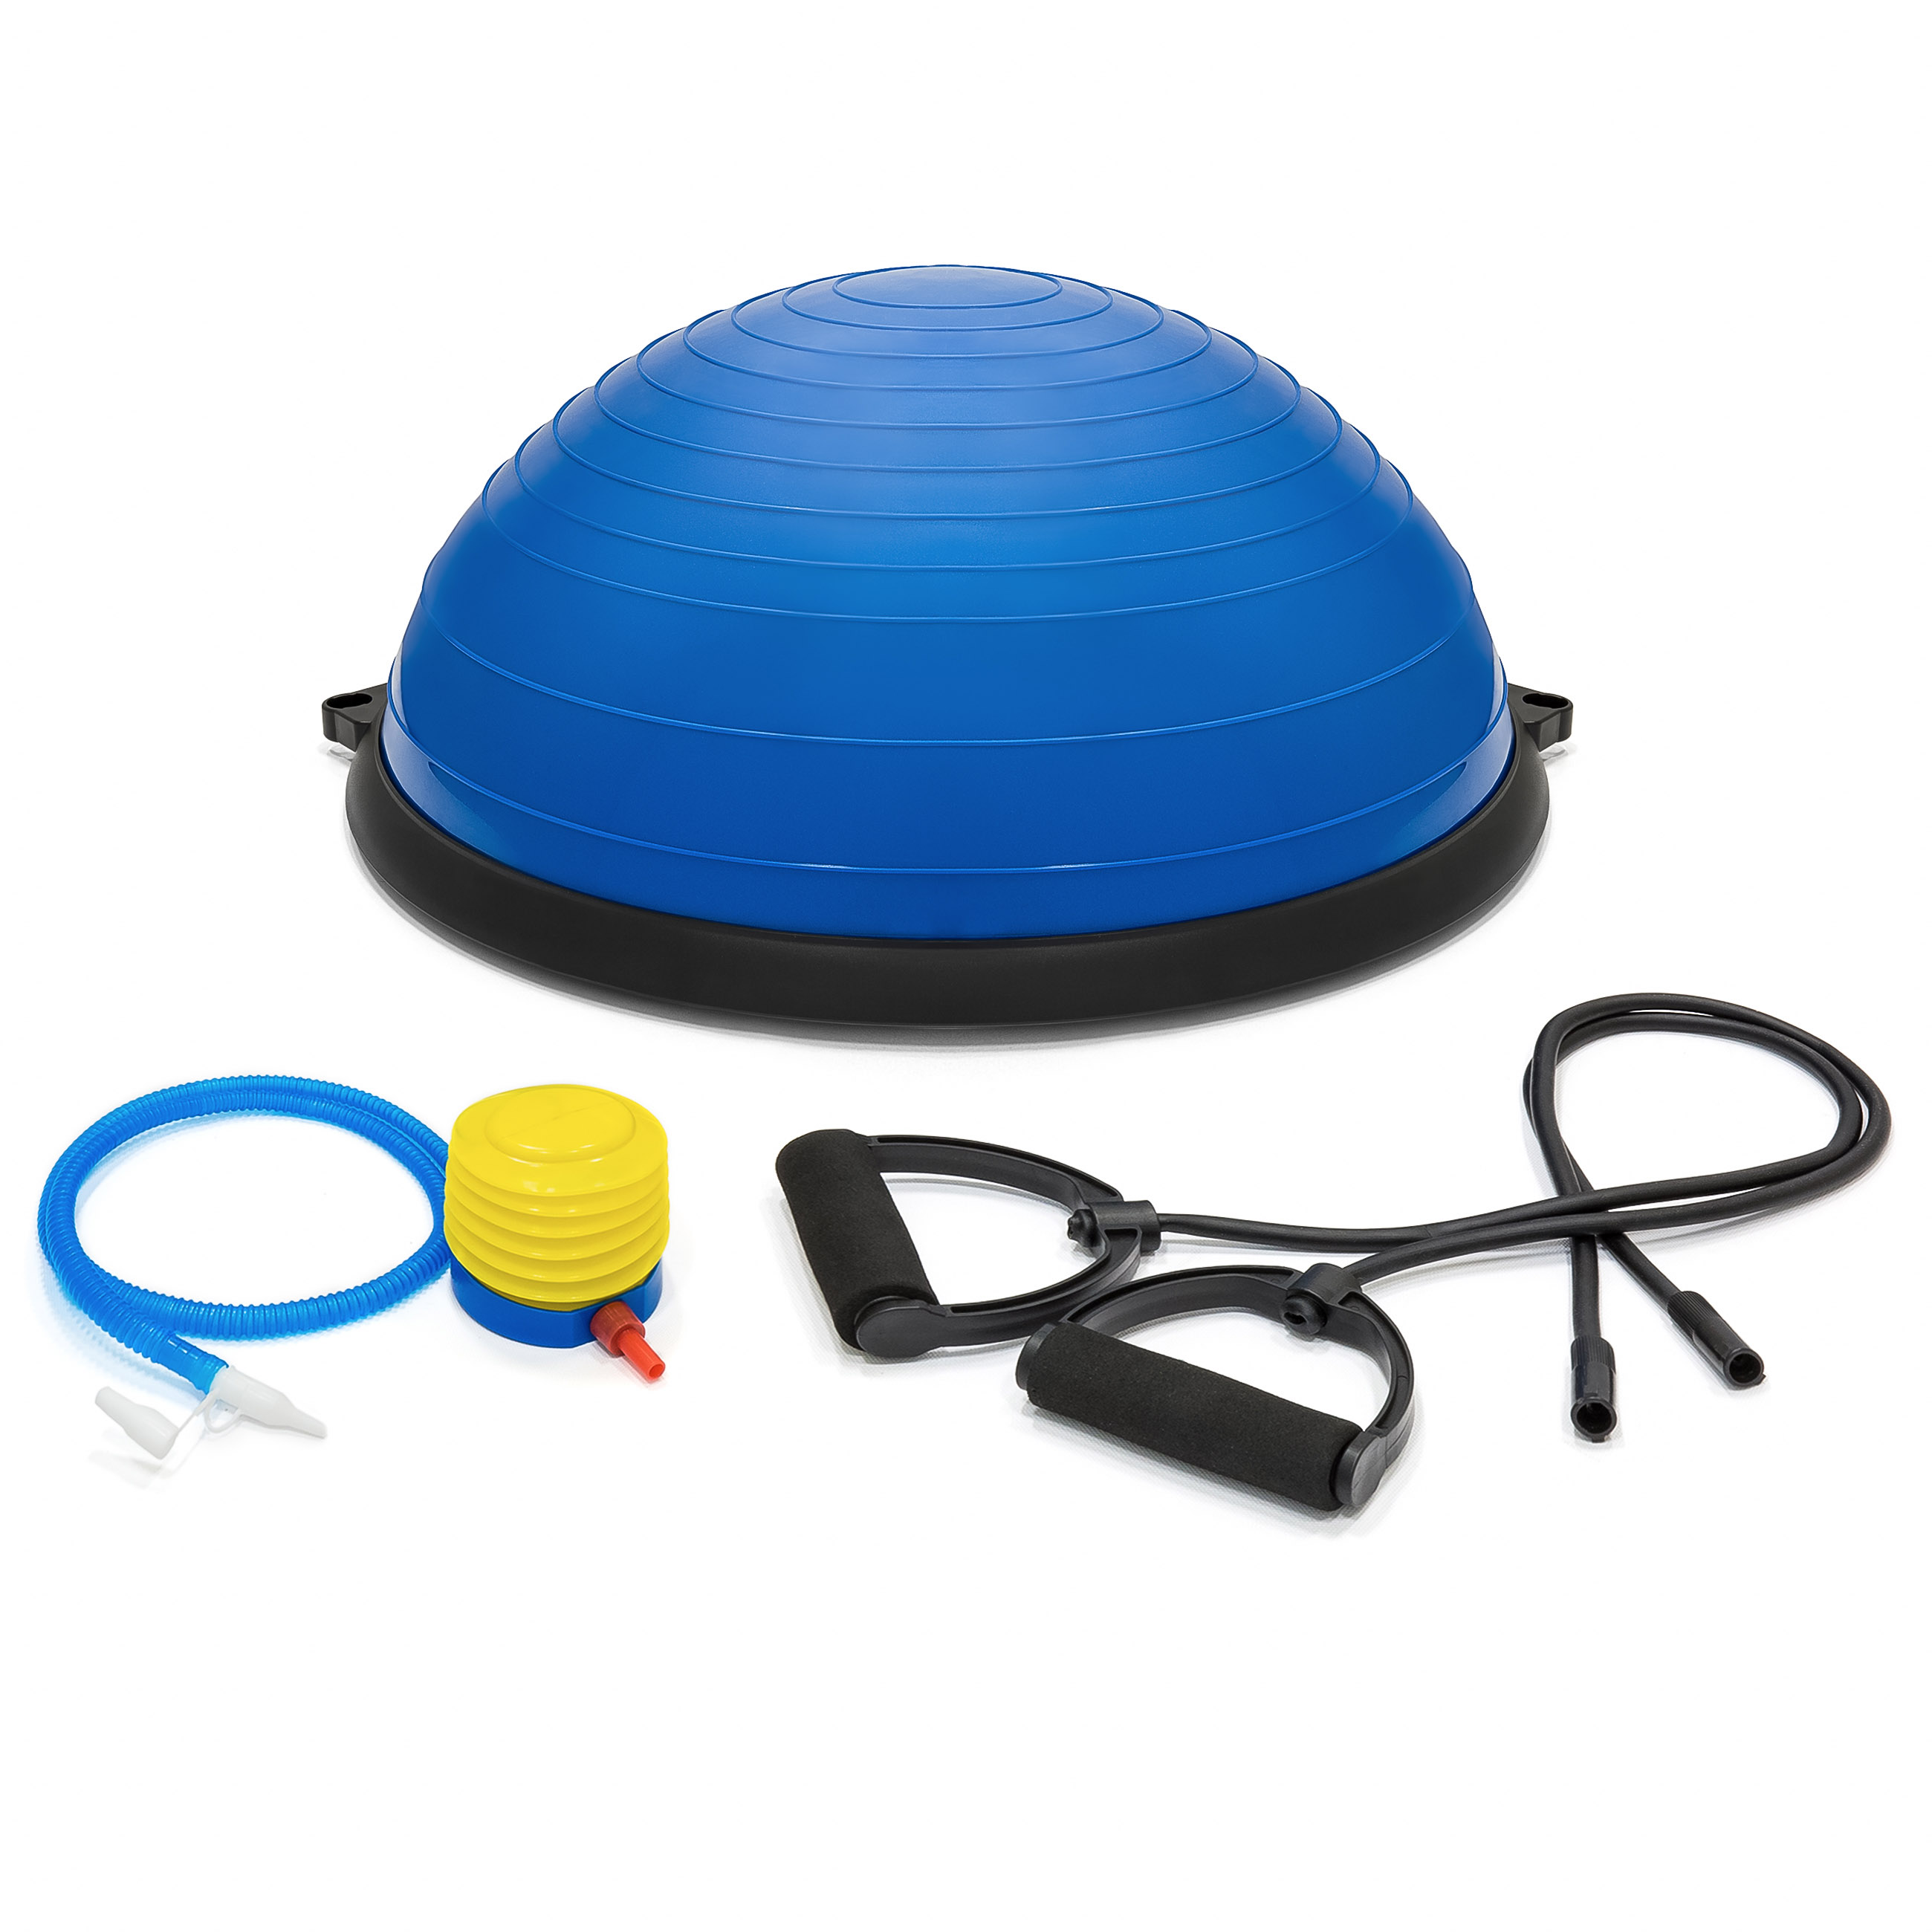 Yoga Balance Exercise Ball w/ 2 Resistance Bands & Pump - Blue